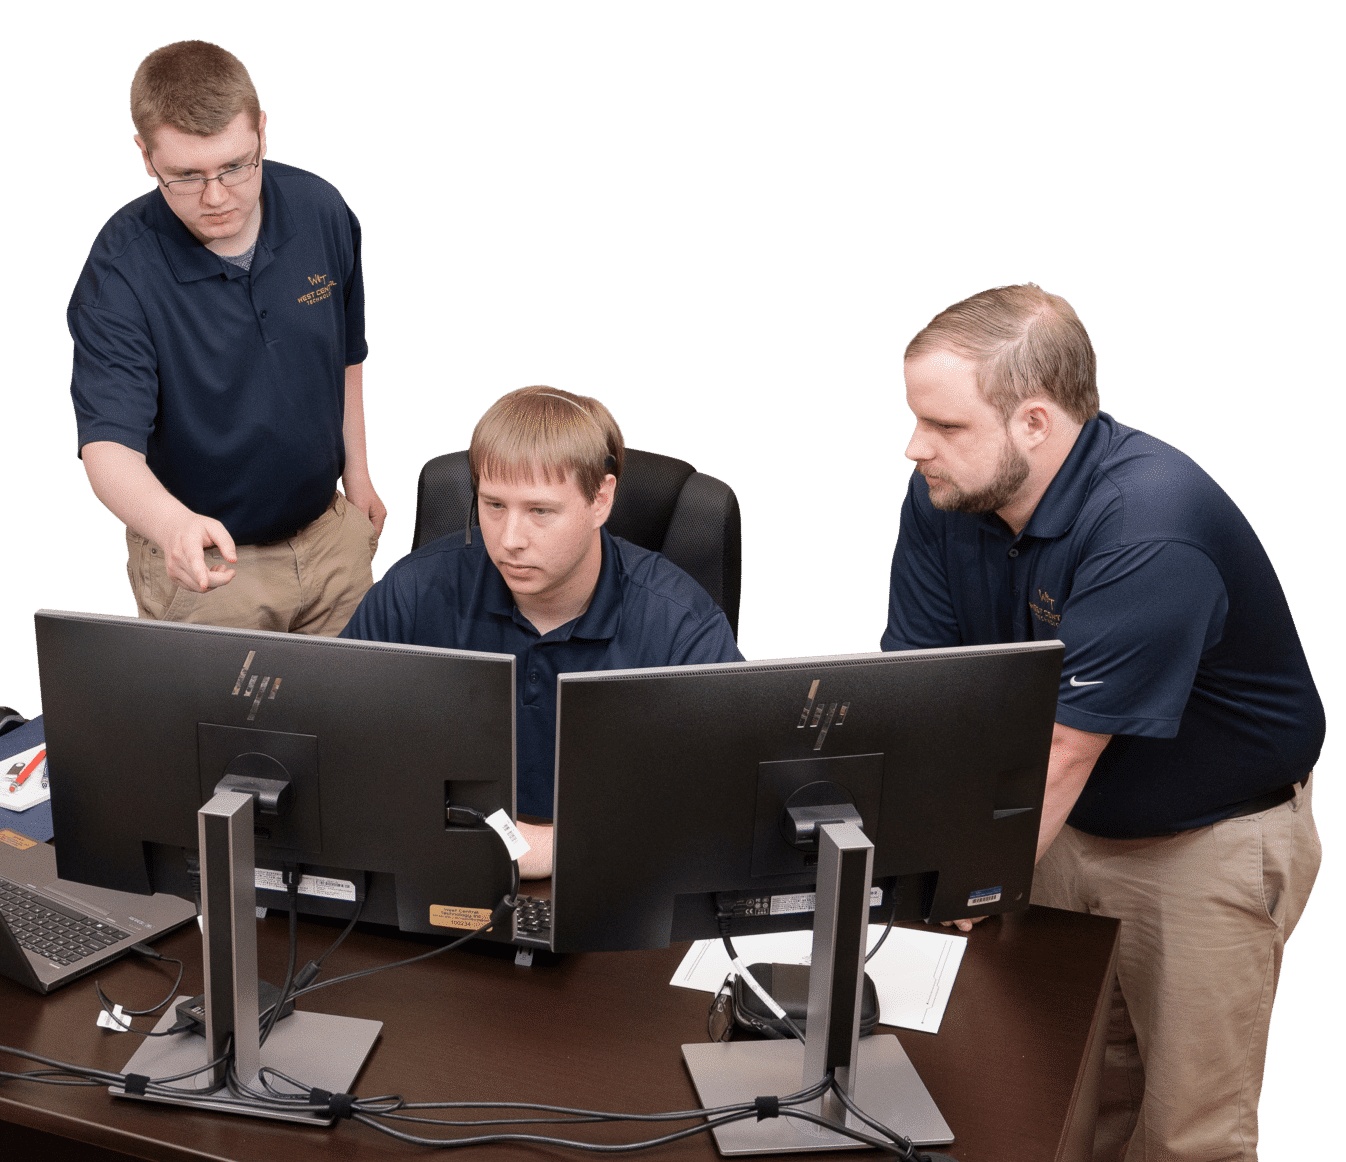 WCT Support Team